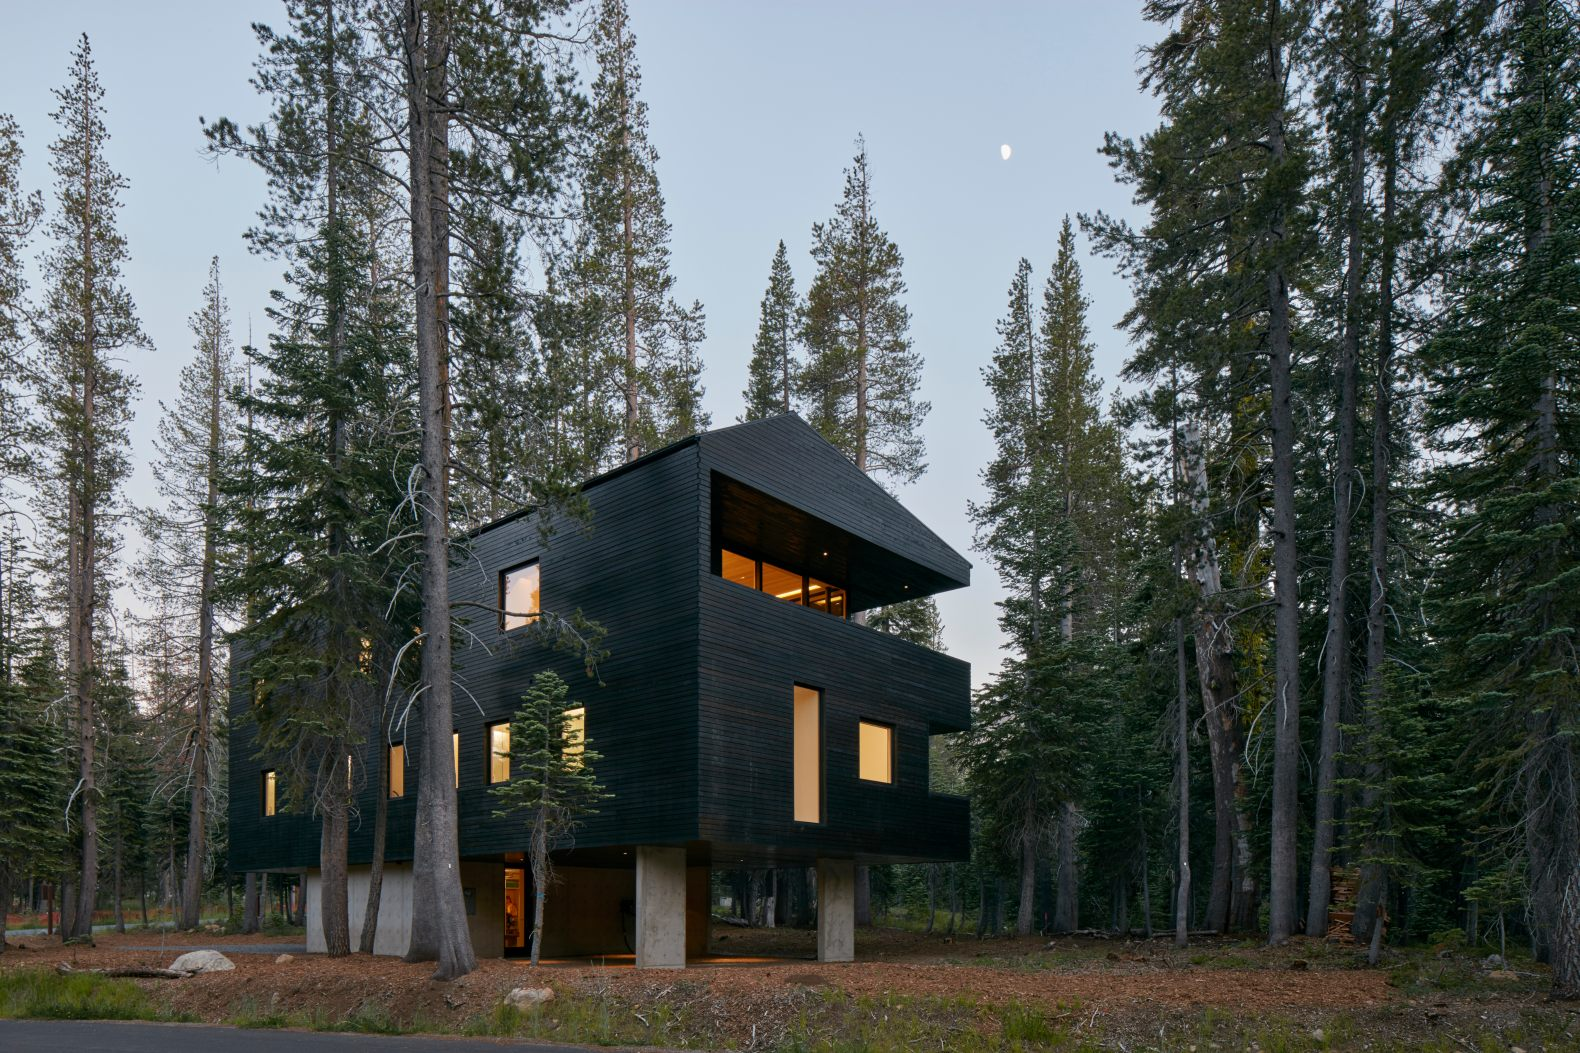 A dark, timber home rests peacefully among evergreen pine trees